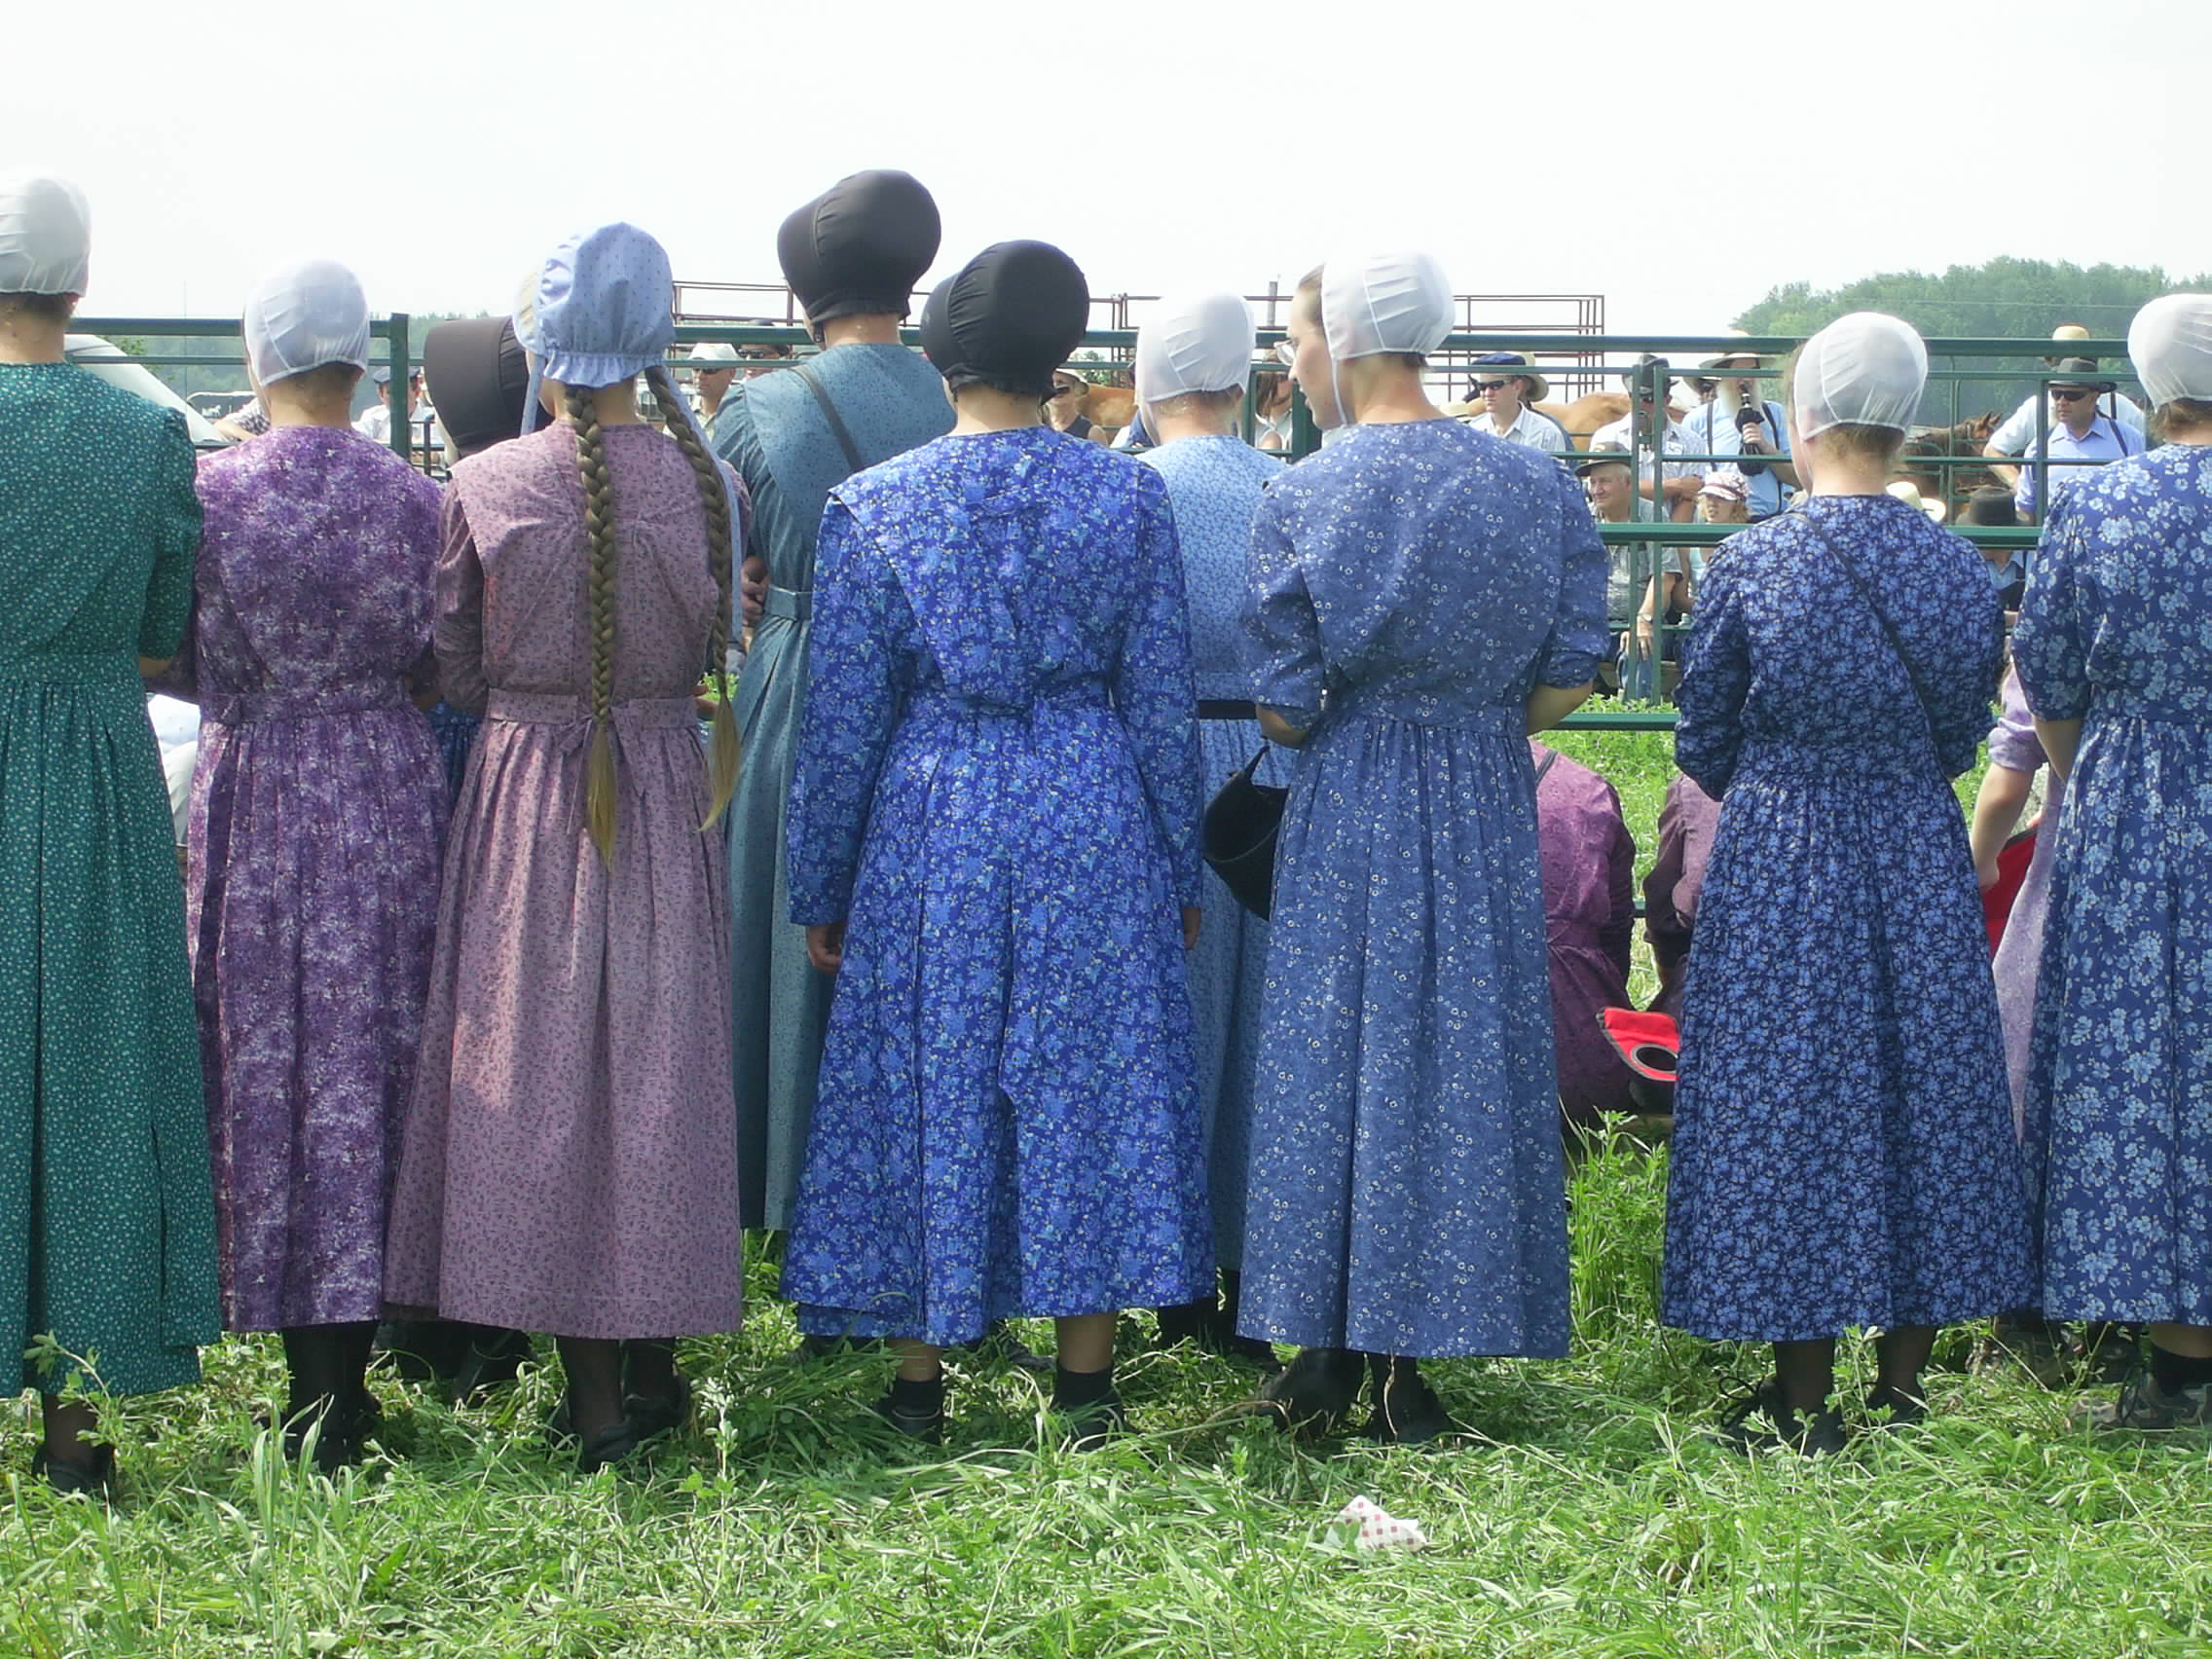 amish open their homes businesses for tours in perth east